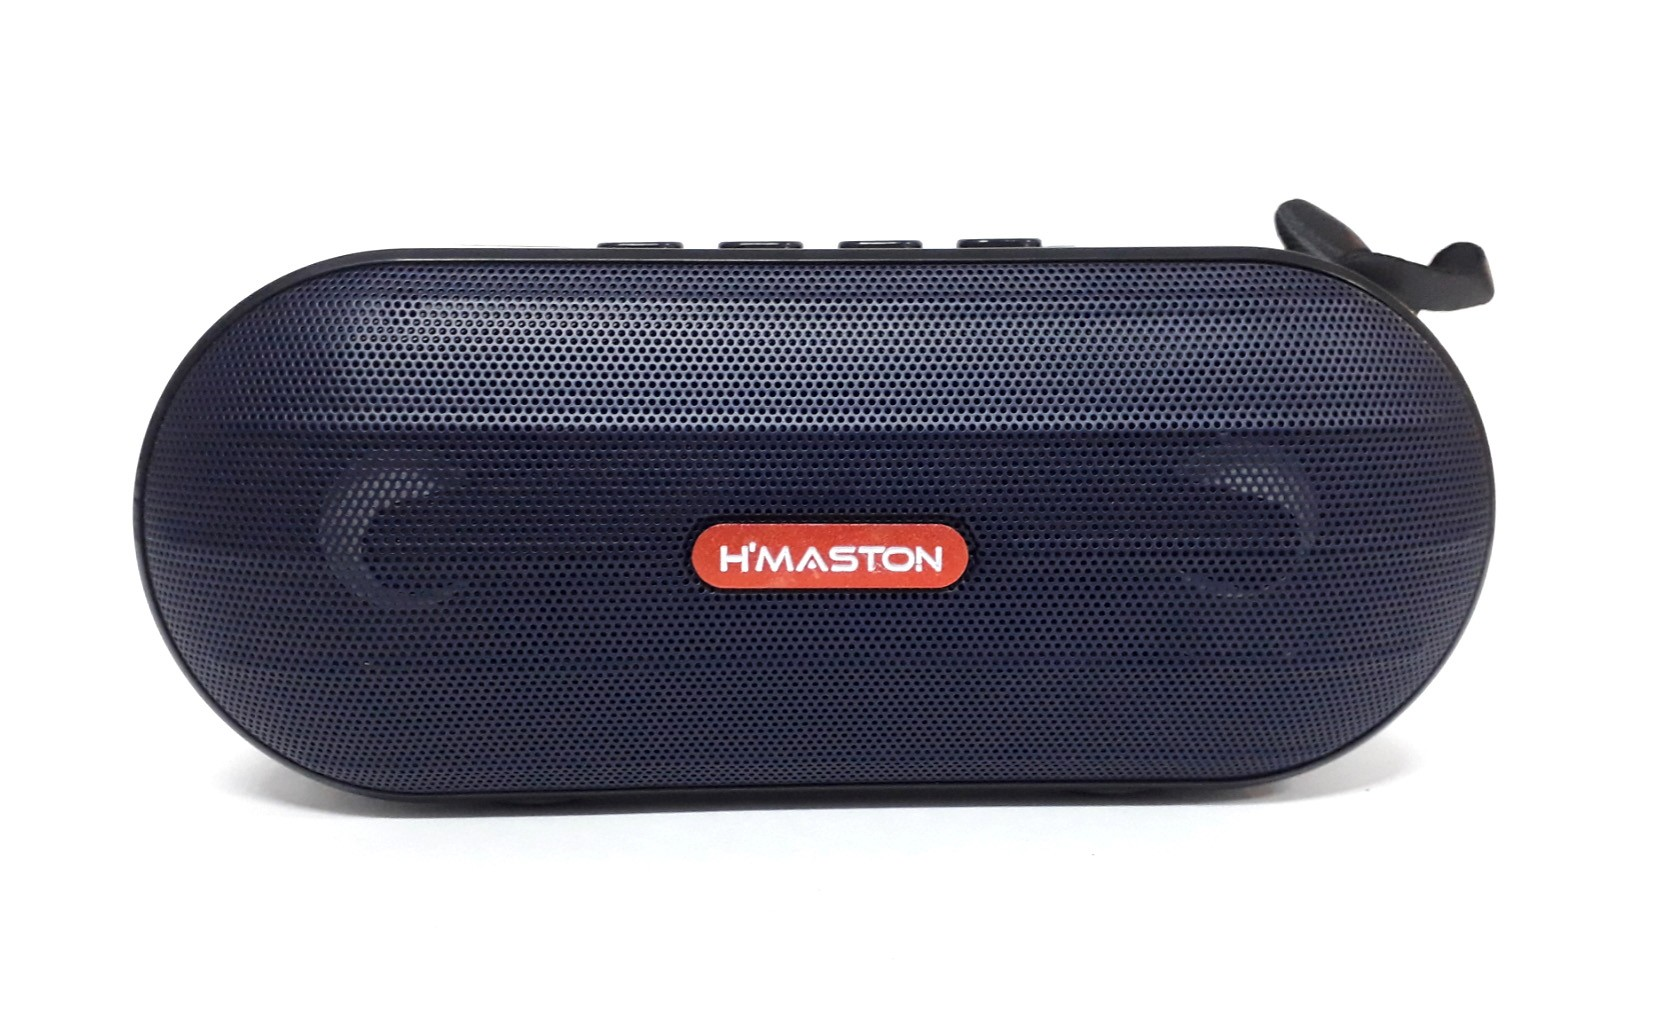 CAIXA DE SOM BLUETOOTH H'MASTON R100